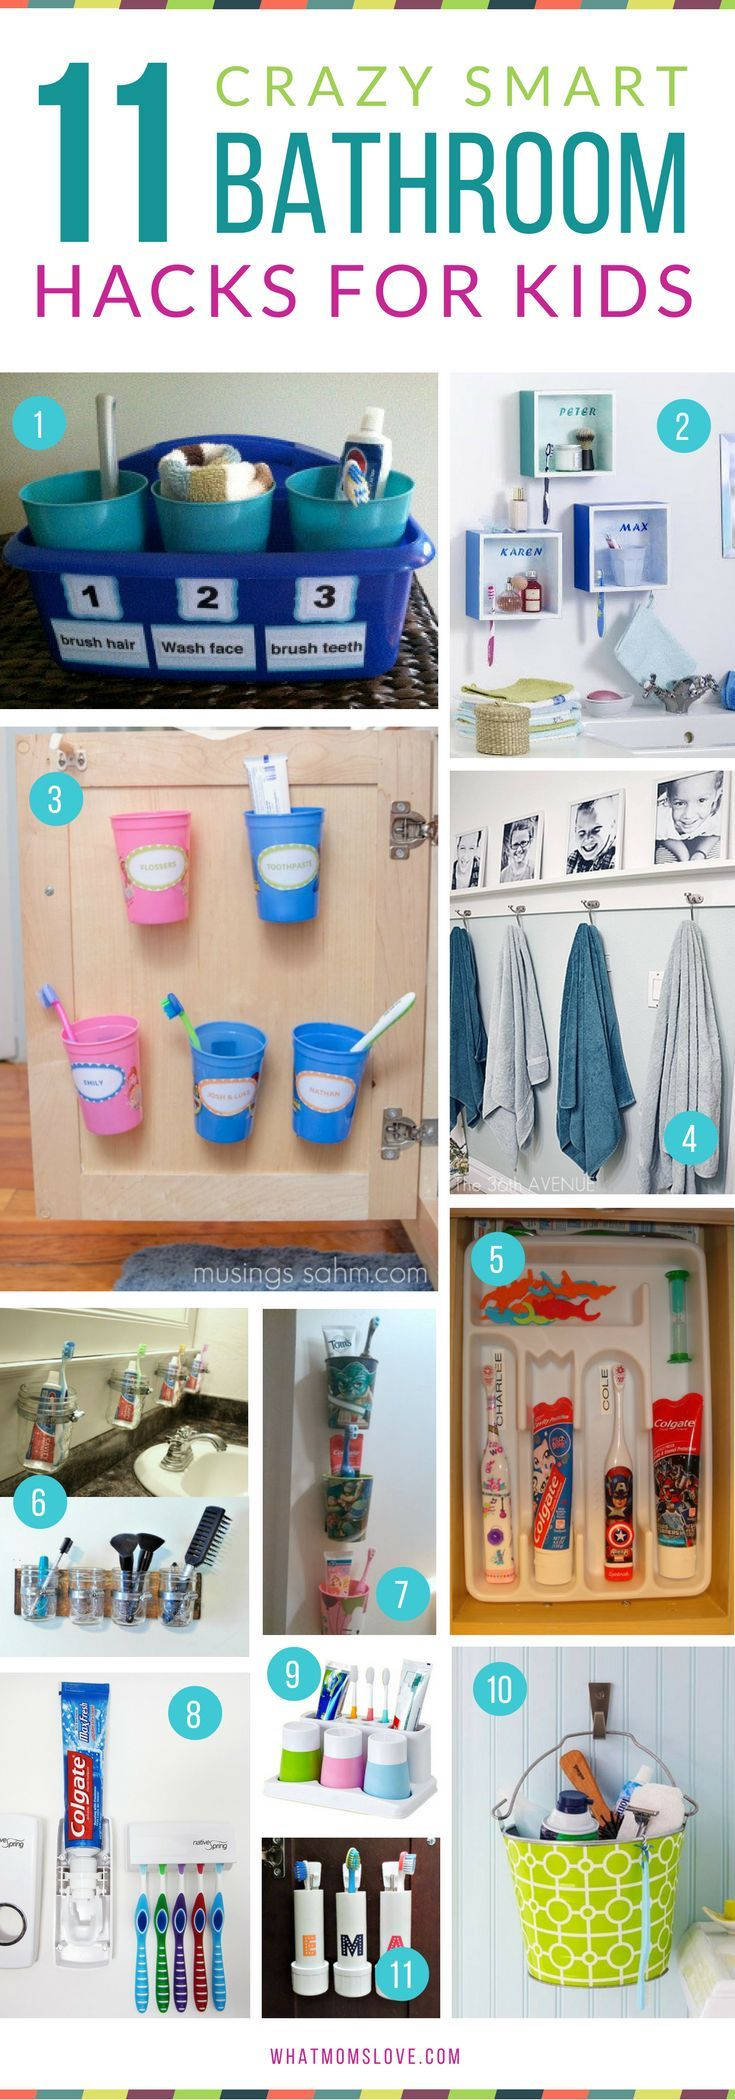 Diy Kids Bathroom Decor 203 best dream home - bathroom images on pinterest | bathroom